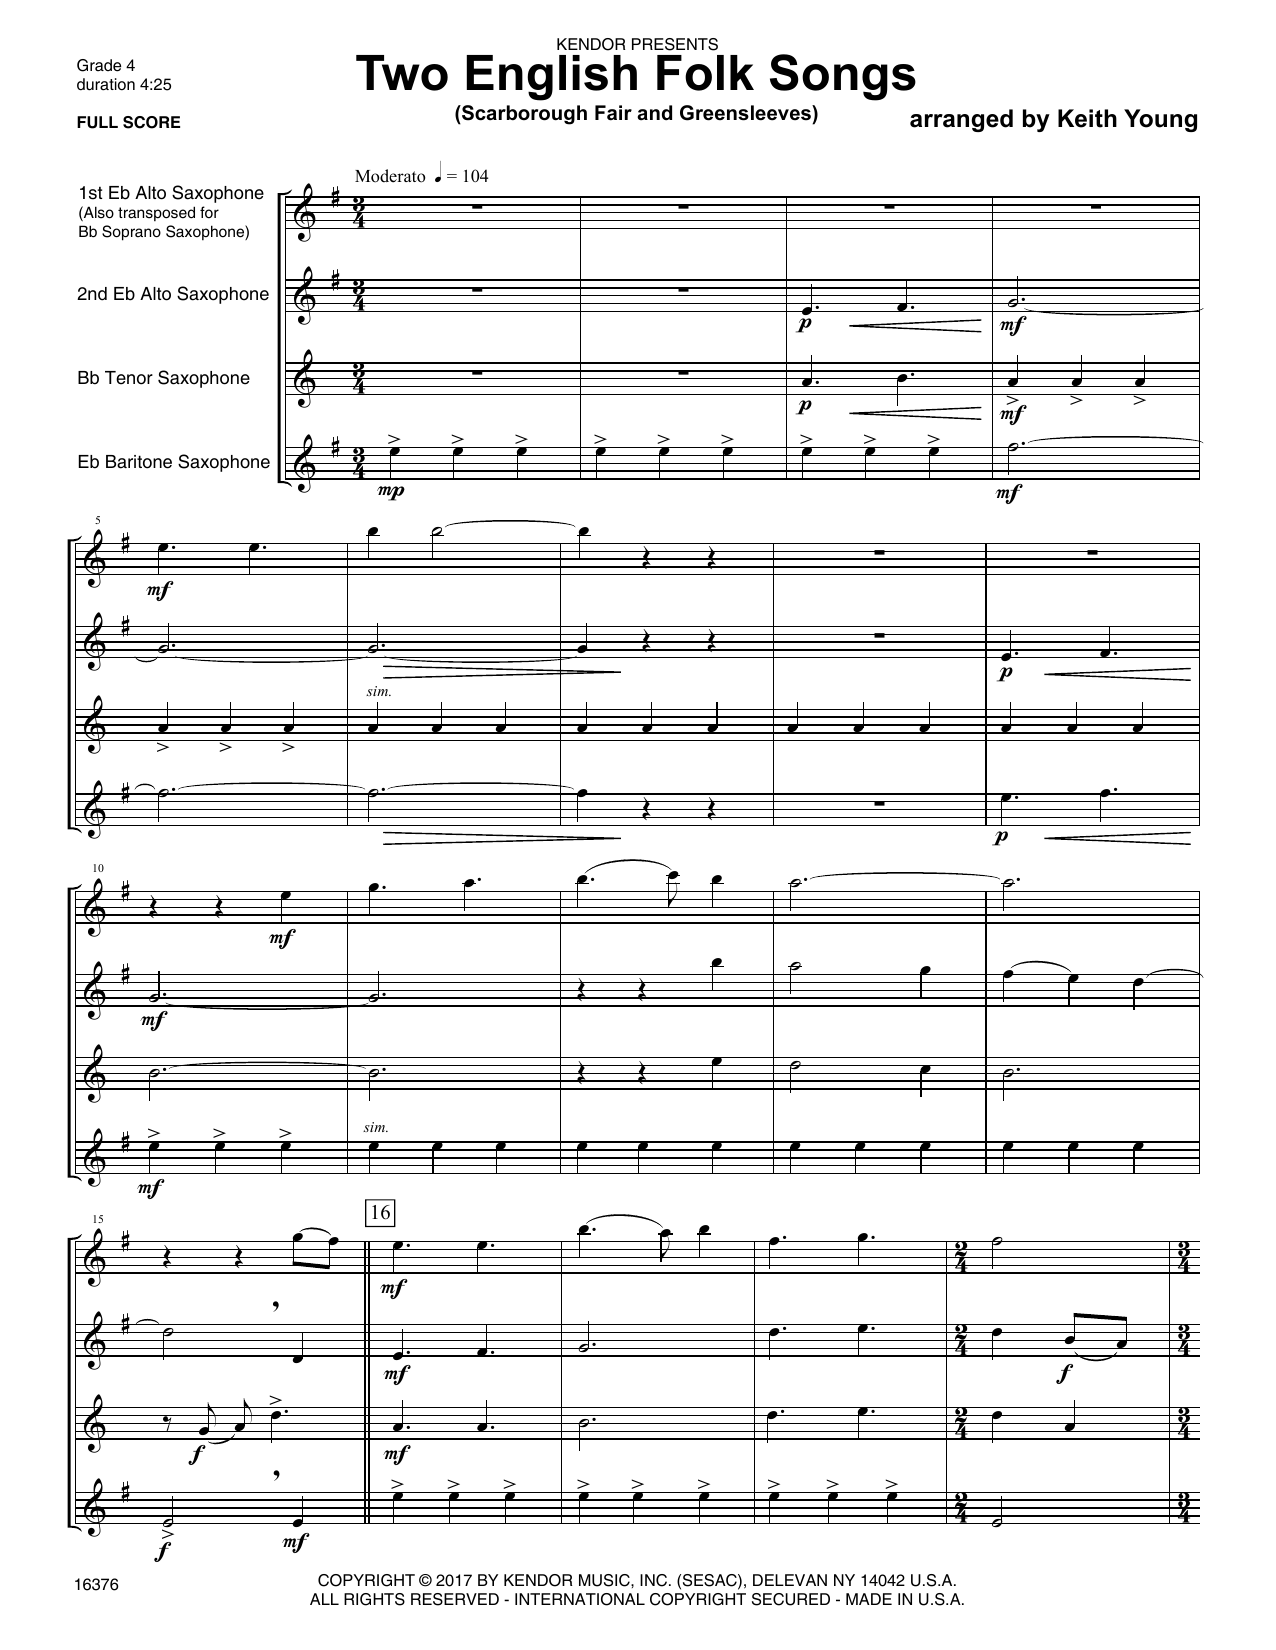 Keith Young Two English Folk Songs (Scarborough Fair and Greensleeves) - Full Score sheet music notes printable PDF score